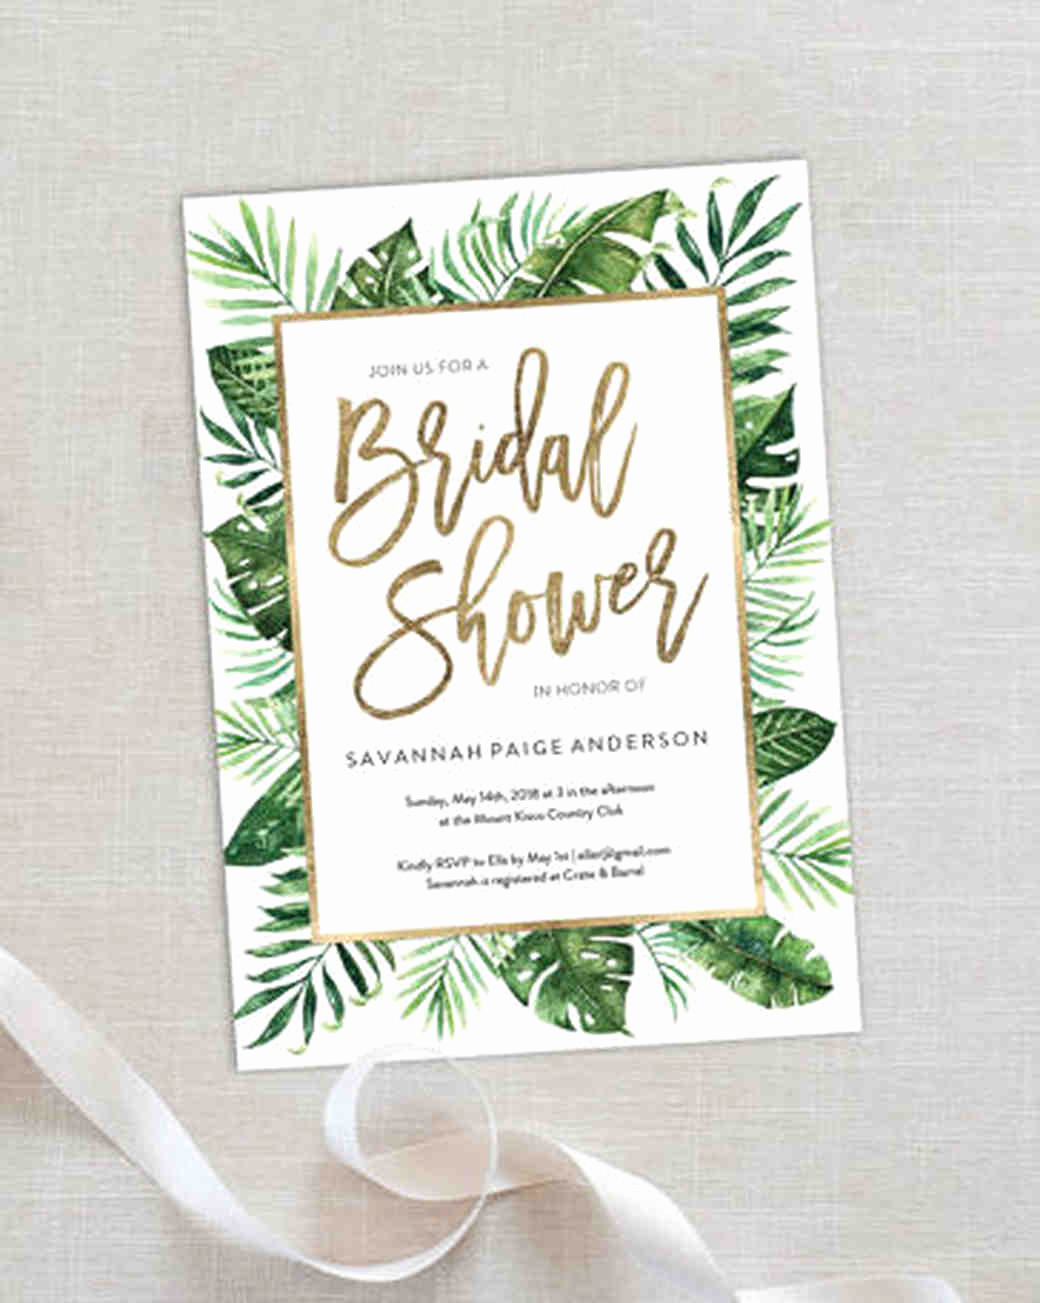 Bridal Shower Invitation Images New 10 Affordable Bridal Shower Invitations You Can Print at